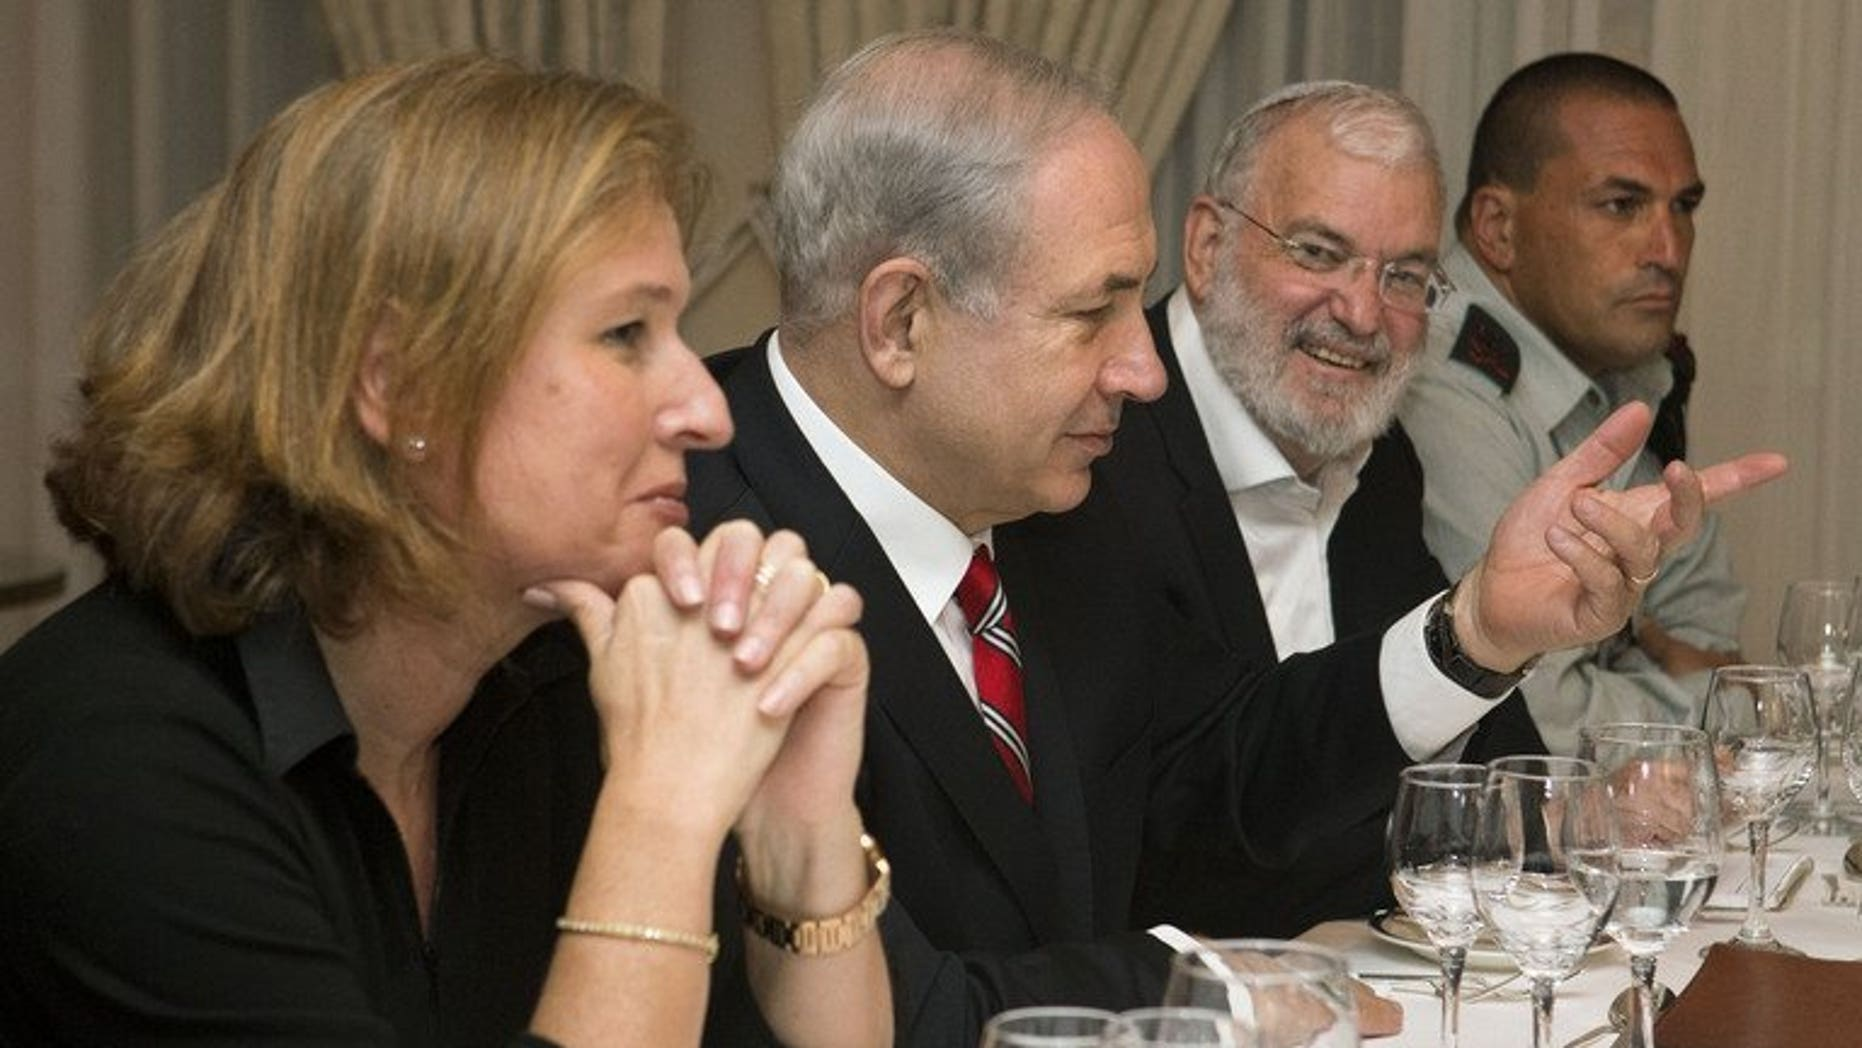 """Tzipi Livni, Israel's chief negotiator with the Palestinians (L) sits next to Israel's Prime Minister Benjamin Netanyahu, in Jerusalem on June 29, 2013. Justice Minister Livni hailed a """"positive"""" mood at resumed peace talks with the Palestinians in Washington, the first in three years."""